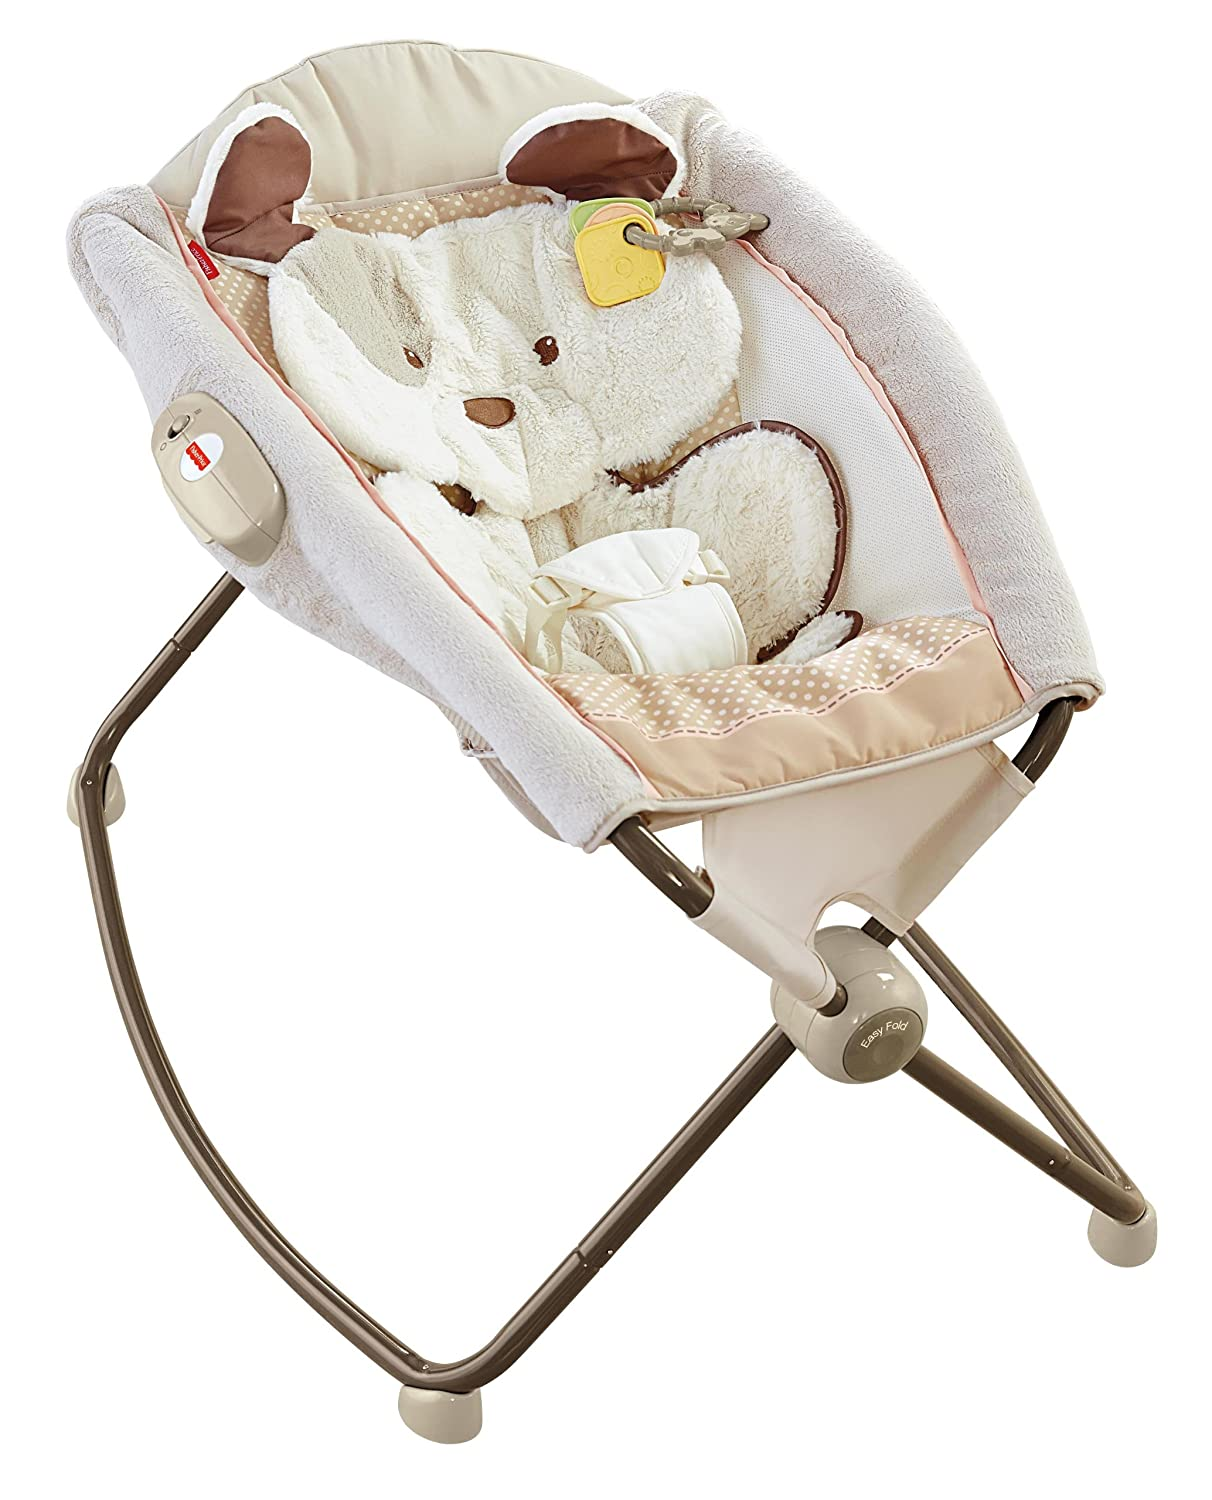 Cradle Crib Bedside Bassinet Newborn Baby Portable